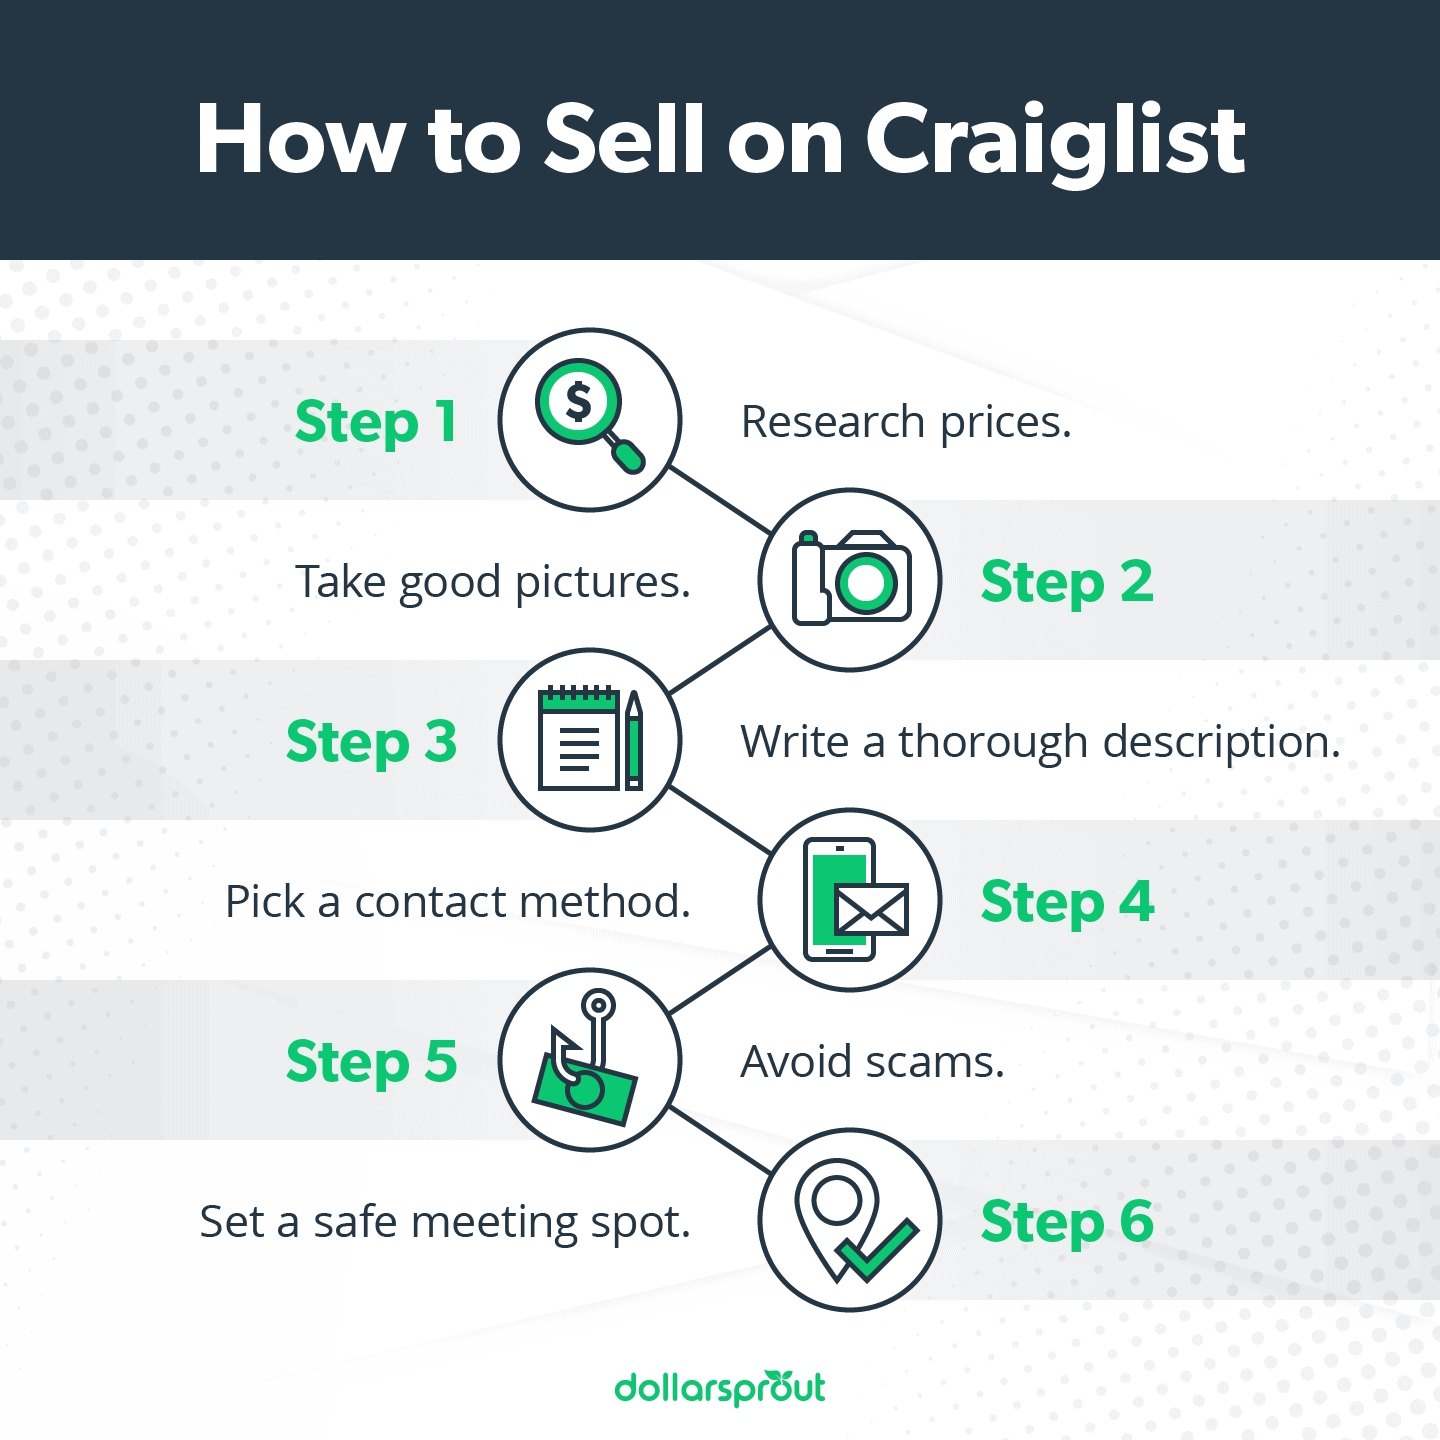 How to Sell on Craiglist